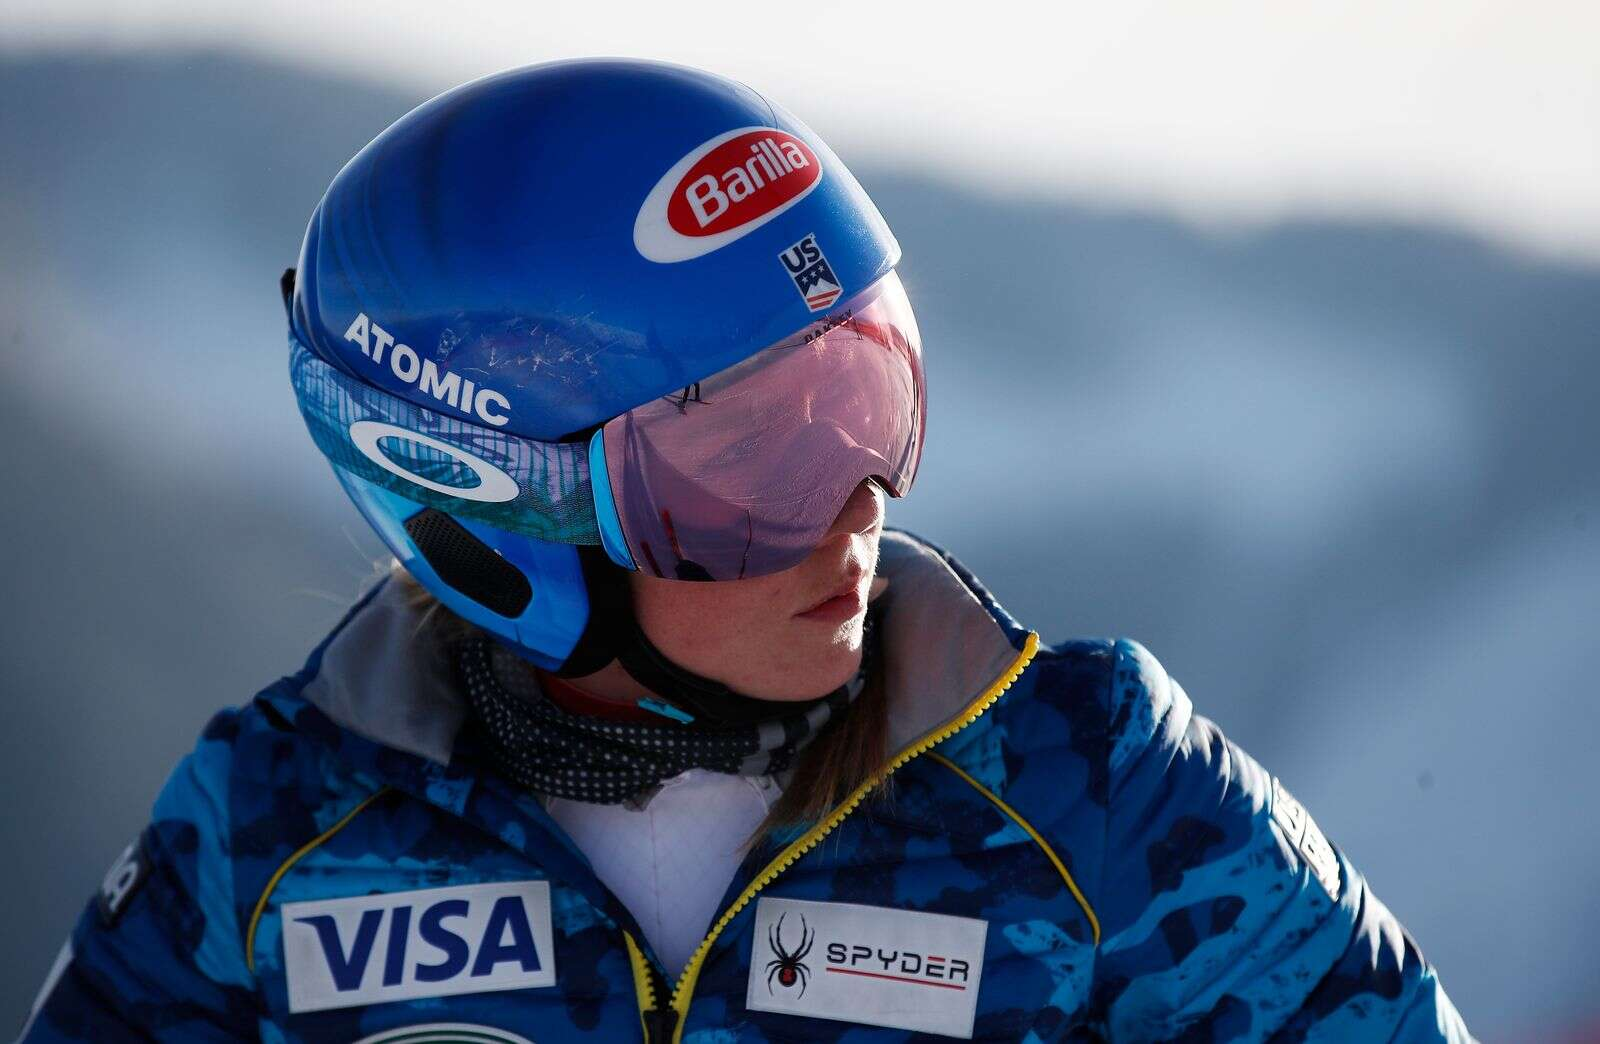 Mikaela Shiffrin finishes third in World Cup GS on Sunday in Slovakia